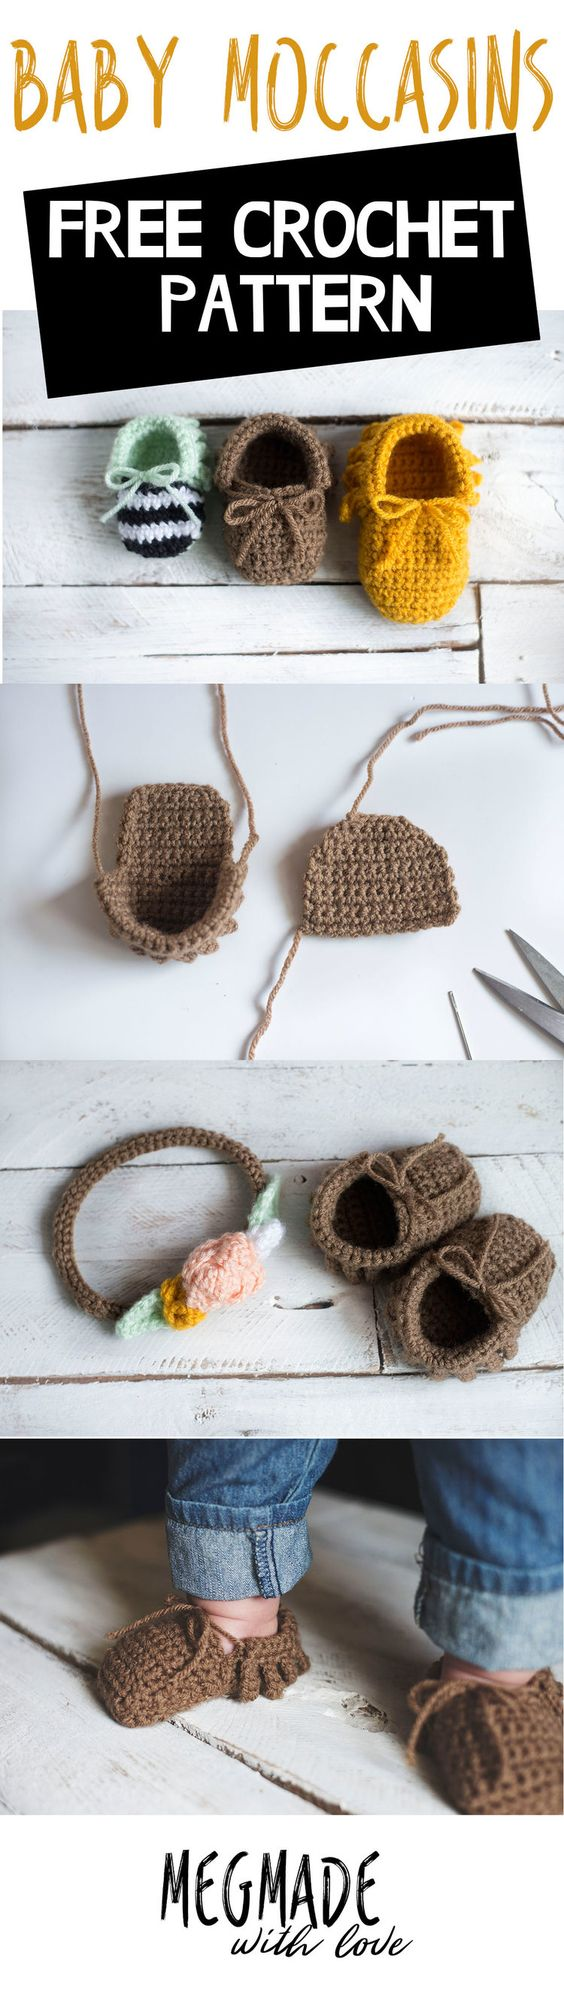 Crochet Baby Moccasins Pattern — Megmade with Love: